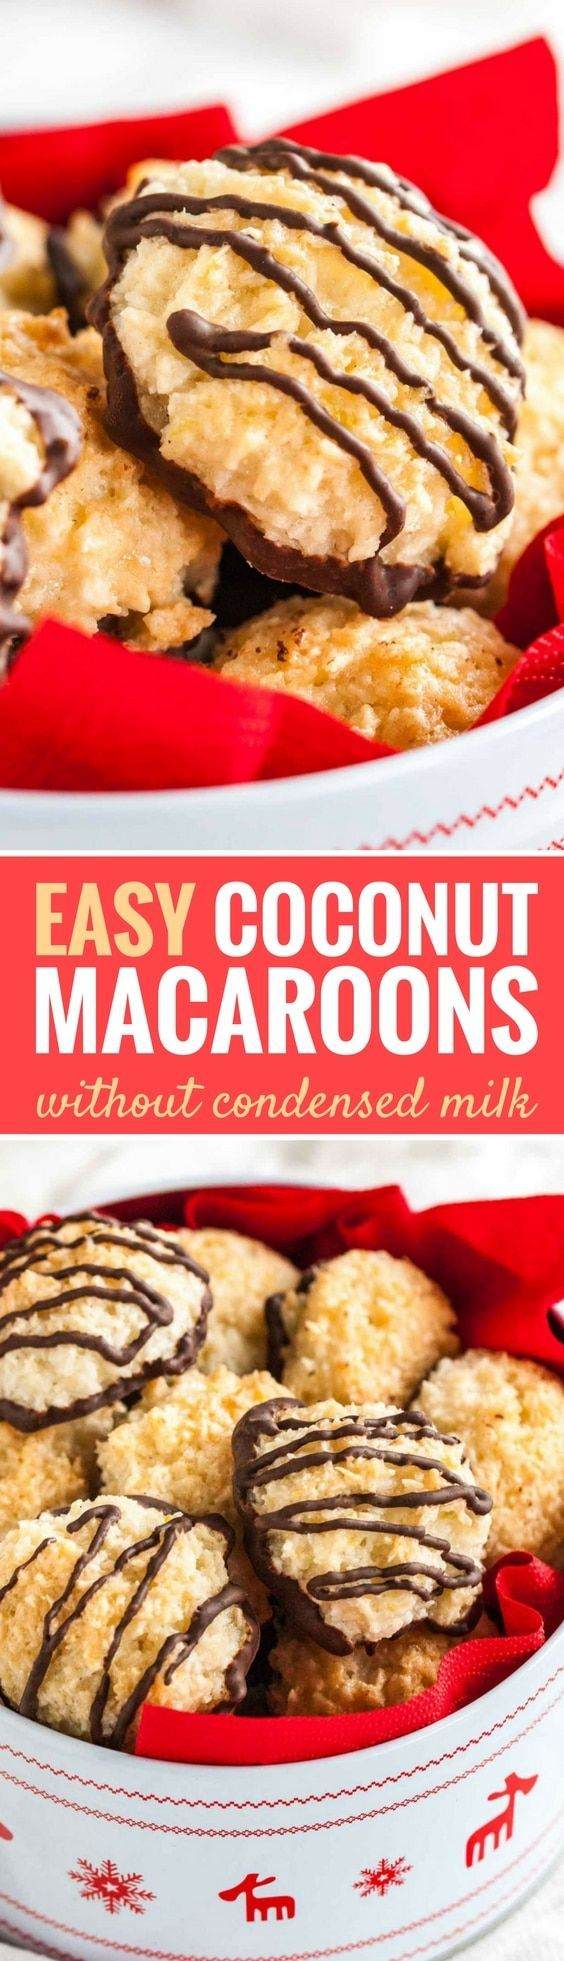 These Coconut Macaroons are chewy and moist on the inside and crispy on the outside! Made with lemon zest and without sweetened condensed milk, these sweet and easy coconut cookies are going to be everyone's favorite treat this holiday season. #christmascookies #cookies #coconutmacaroons #easyrecipes